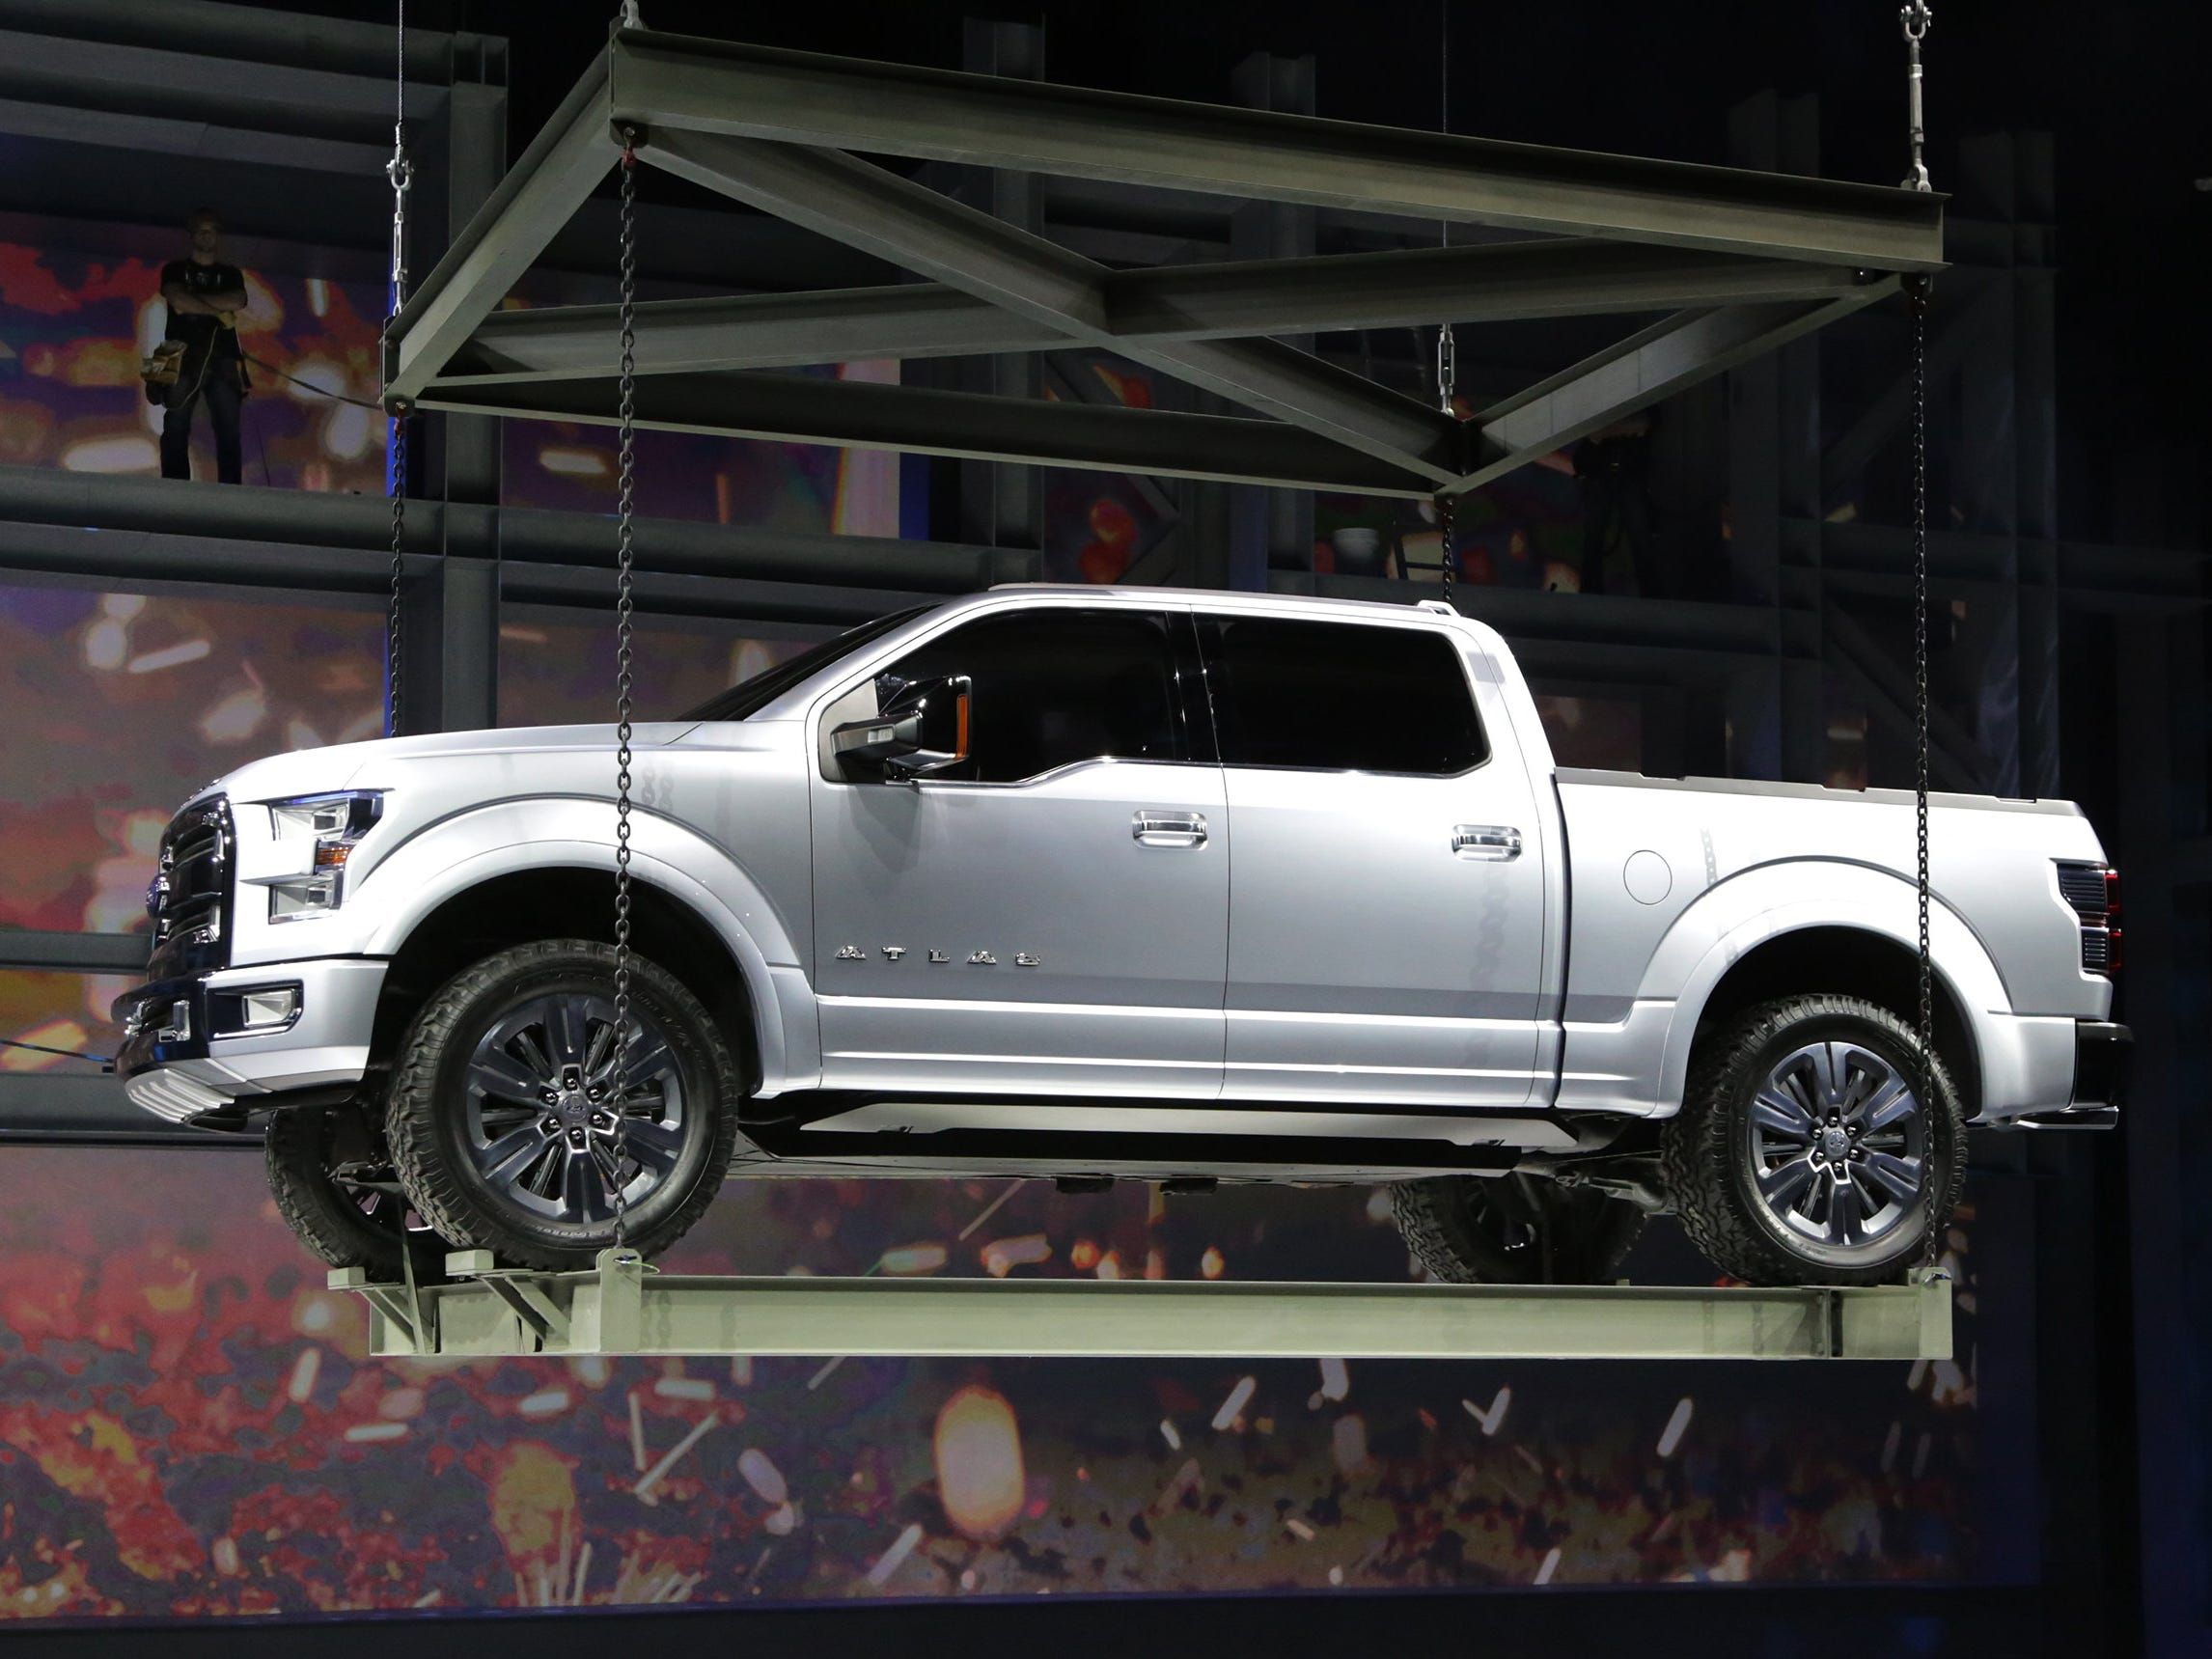 The Ford Atlas concept truck is lowered during it's unveiling at Joe Louis Arena during the 2013 North American International Auto Show on Tuesday, Jan. 15, 2013 in Detroit.